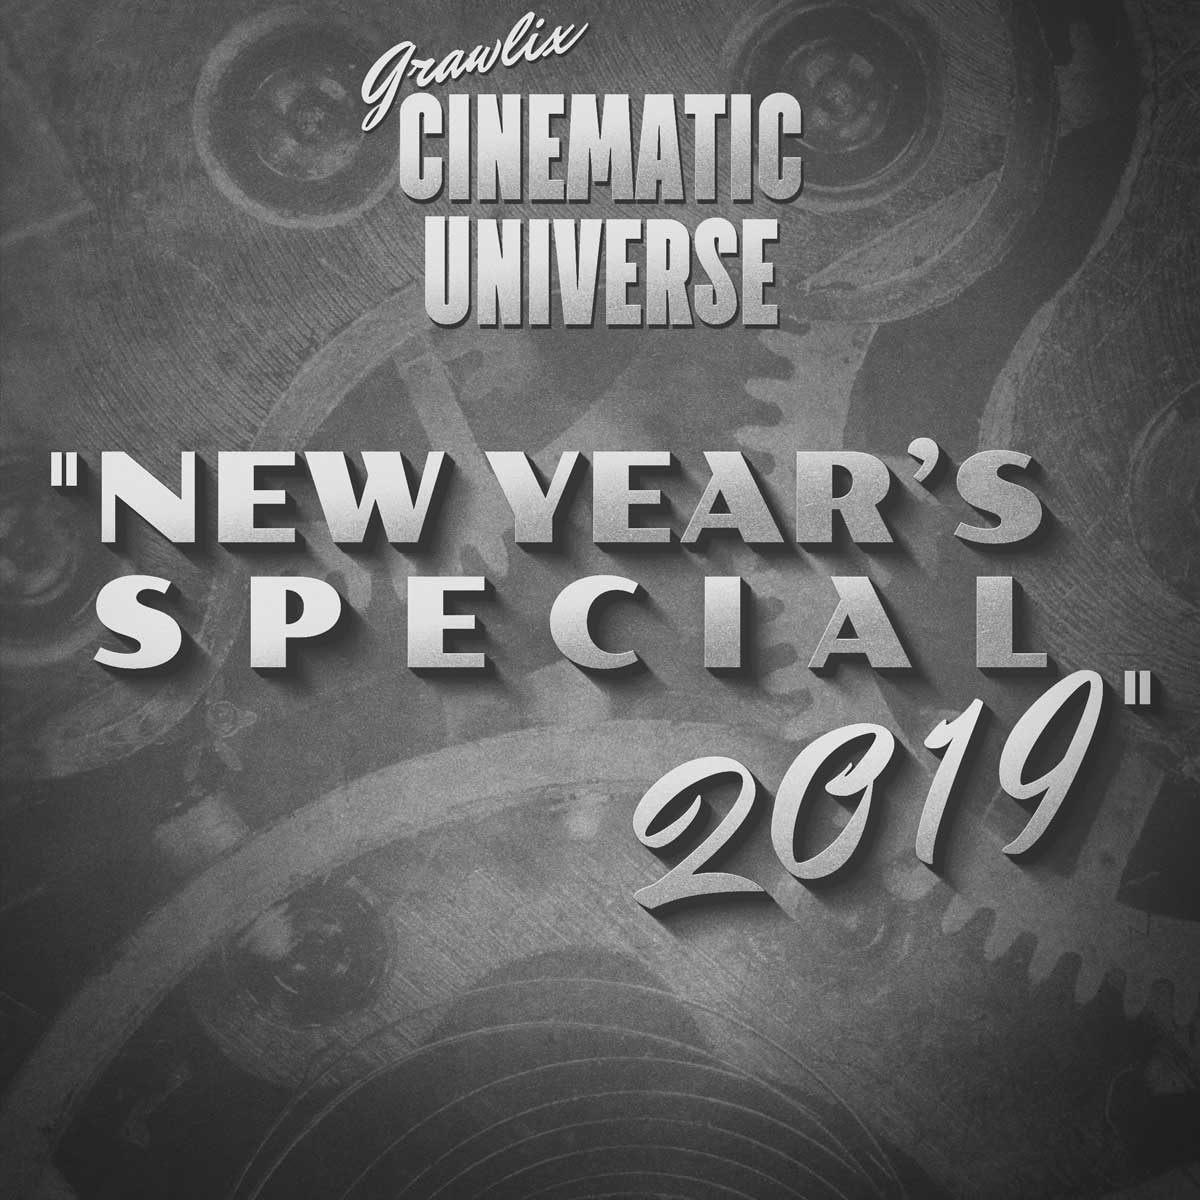 Grawlix Cinematic Universe New Year's Special 2019